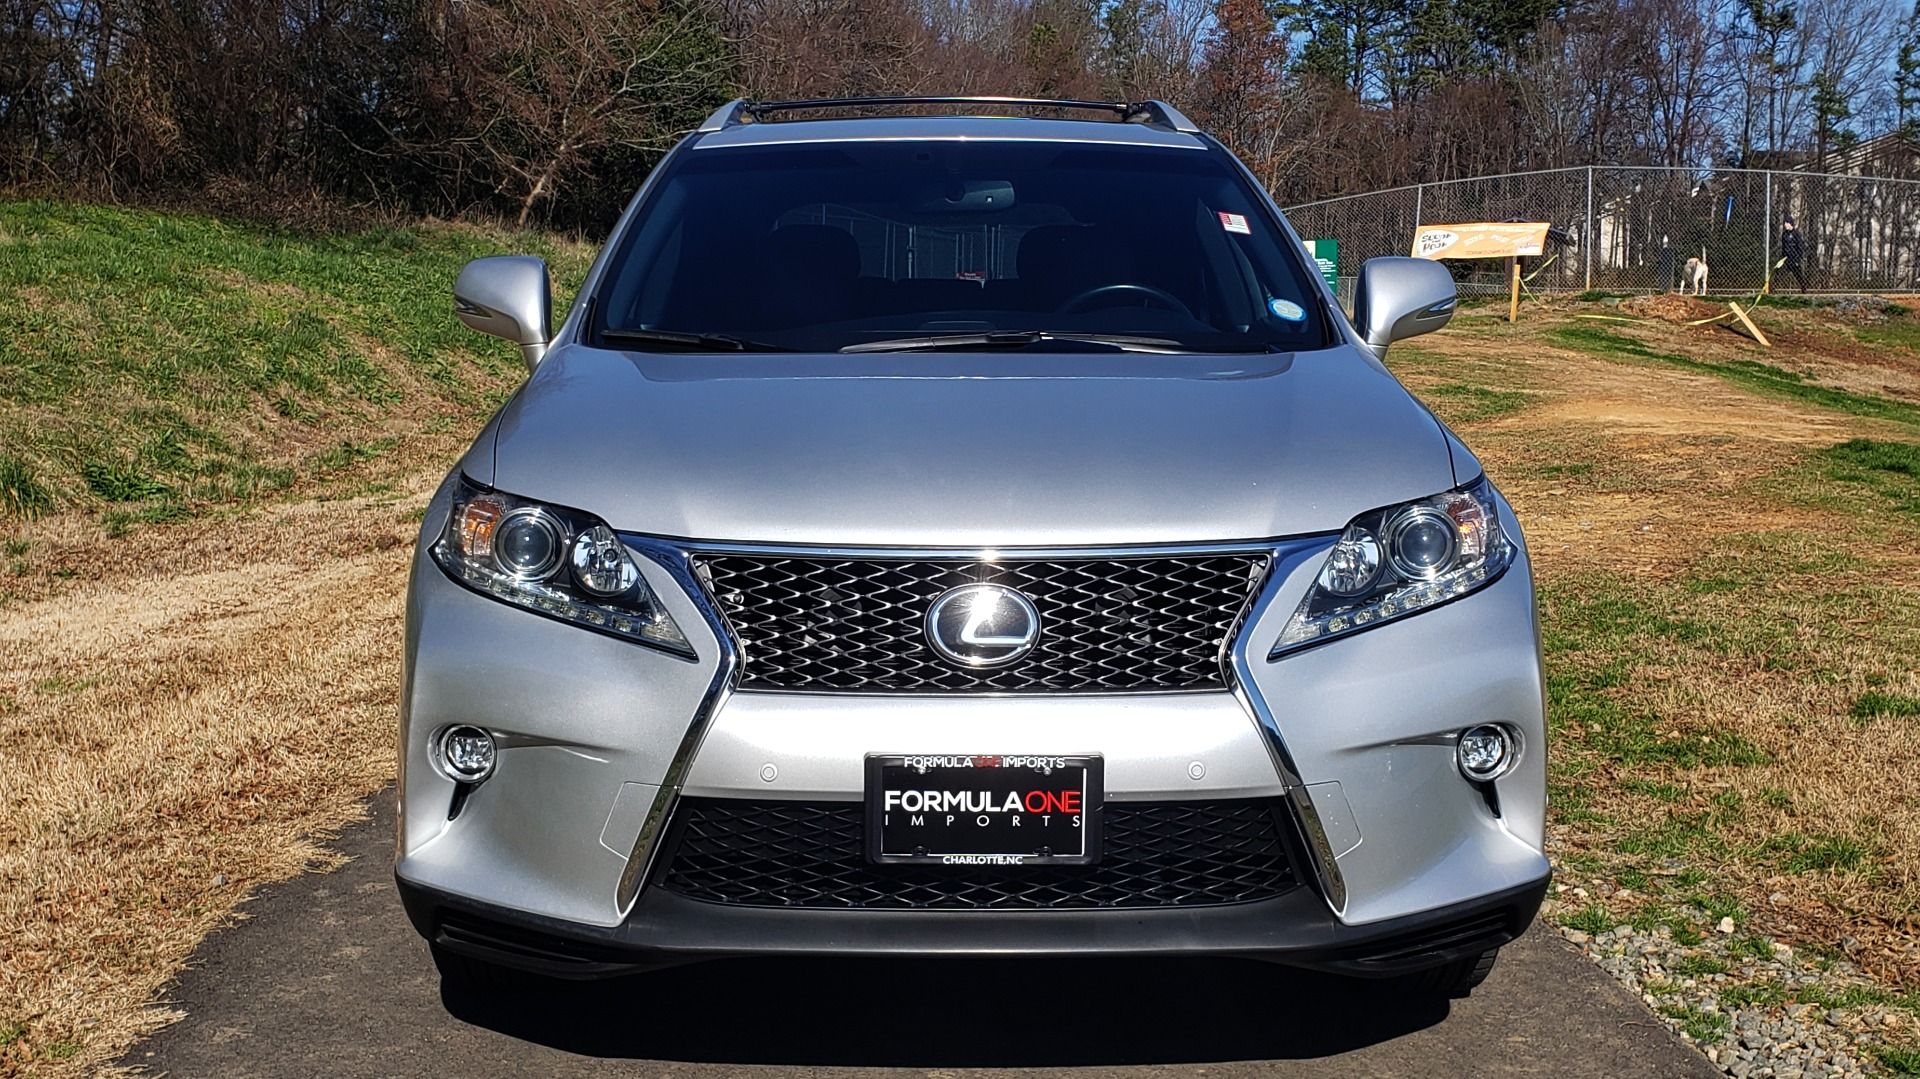 Used 2015 Lexus RX350 AWD F-SPORT / NAV / SUNROOF / BSM / PARK ASST / REARVIEW for sale Sold at Formula Imports in Charlotte NC 28227 9